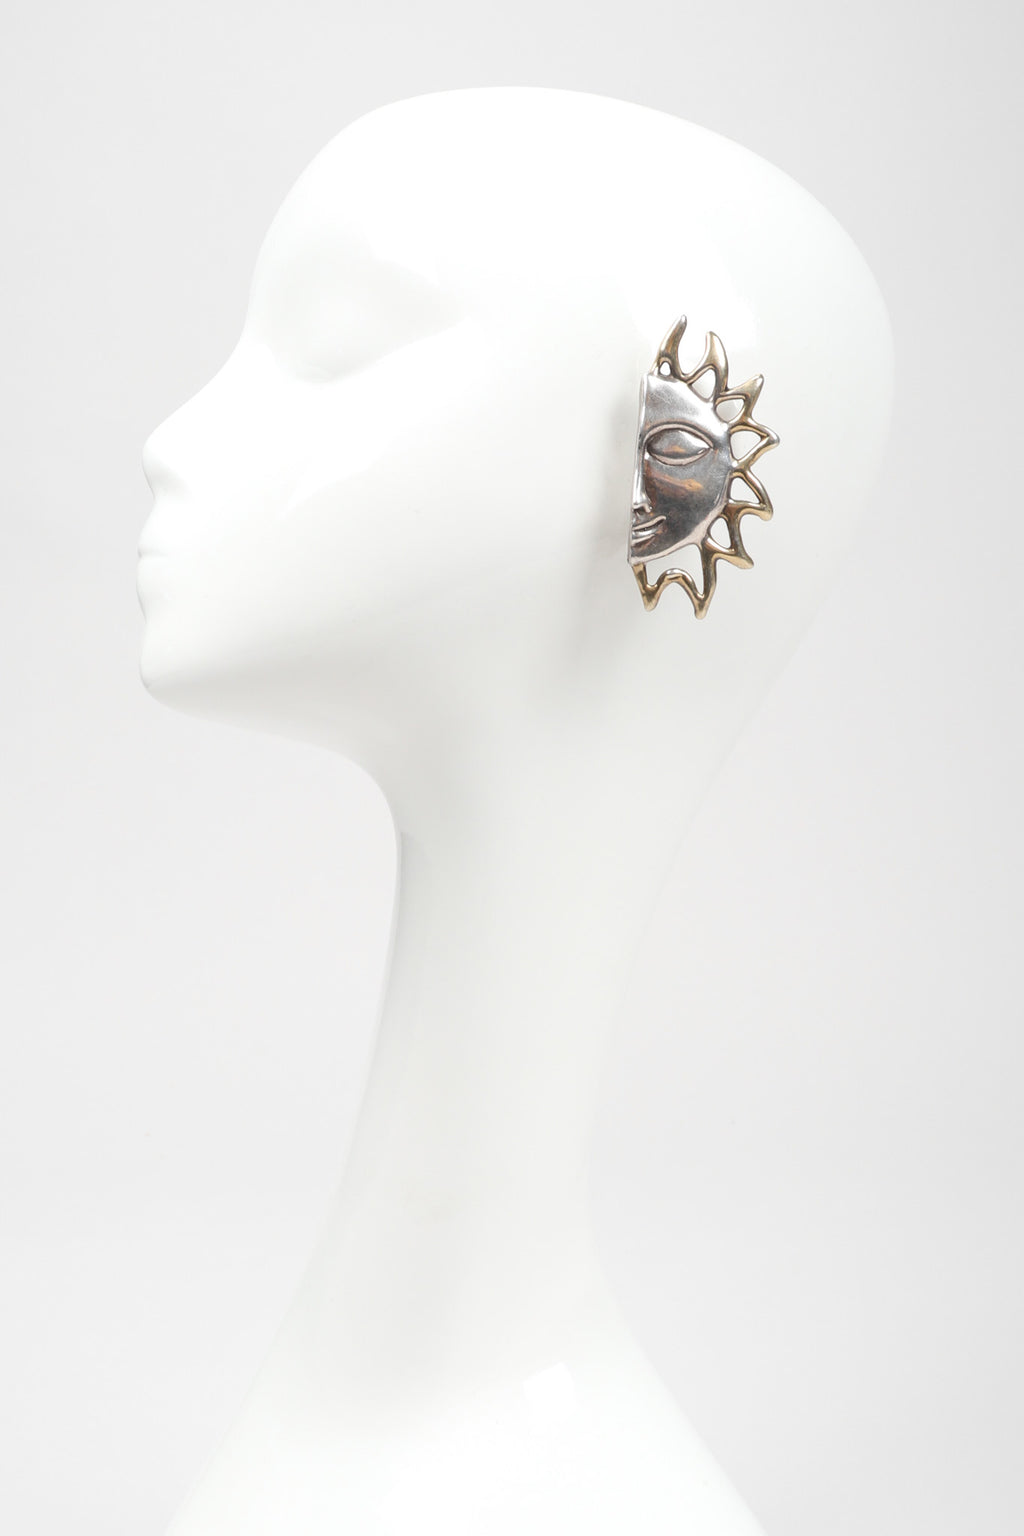 Recess Los Angeles Vintage 925 Sterling Silver Celestial Sun Face Earrings